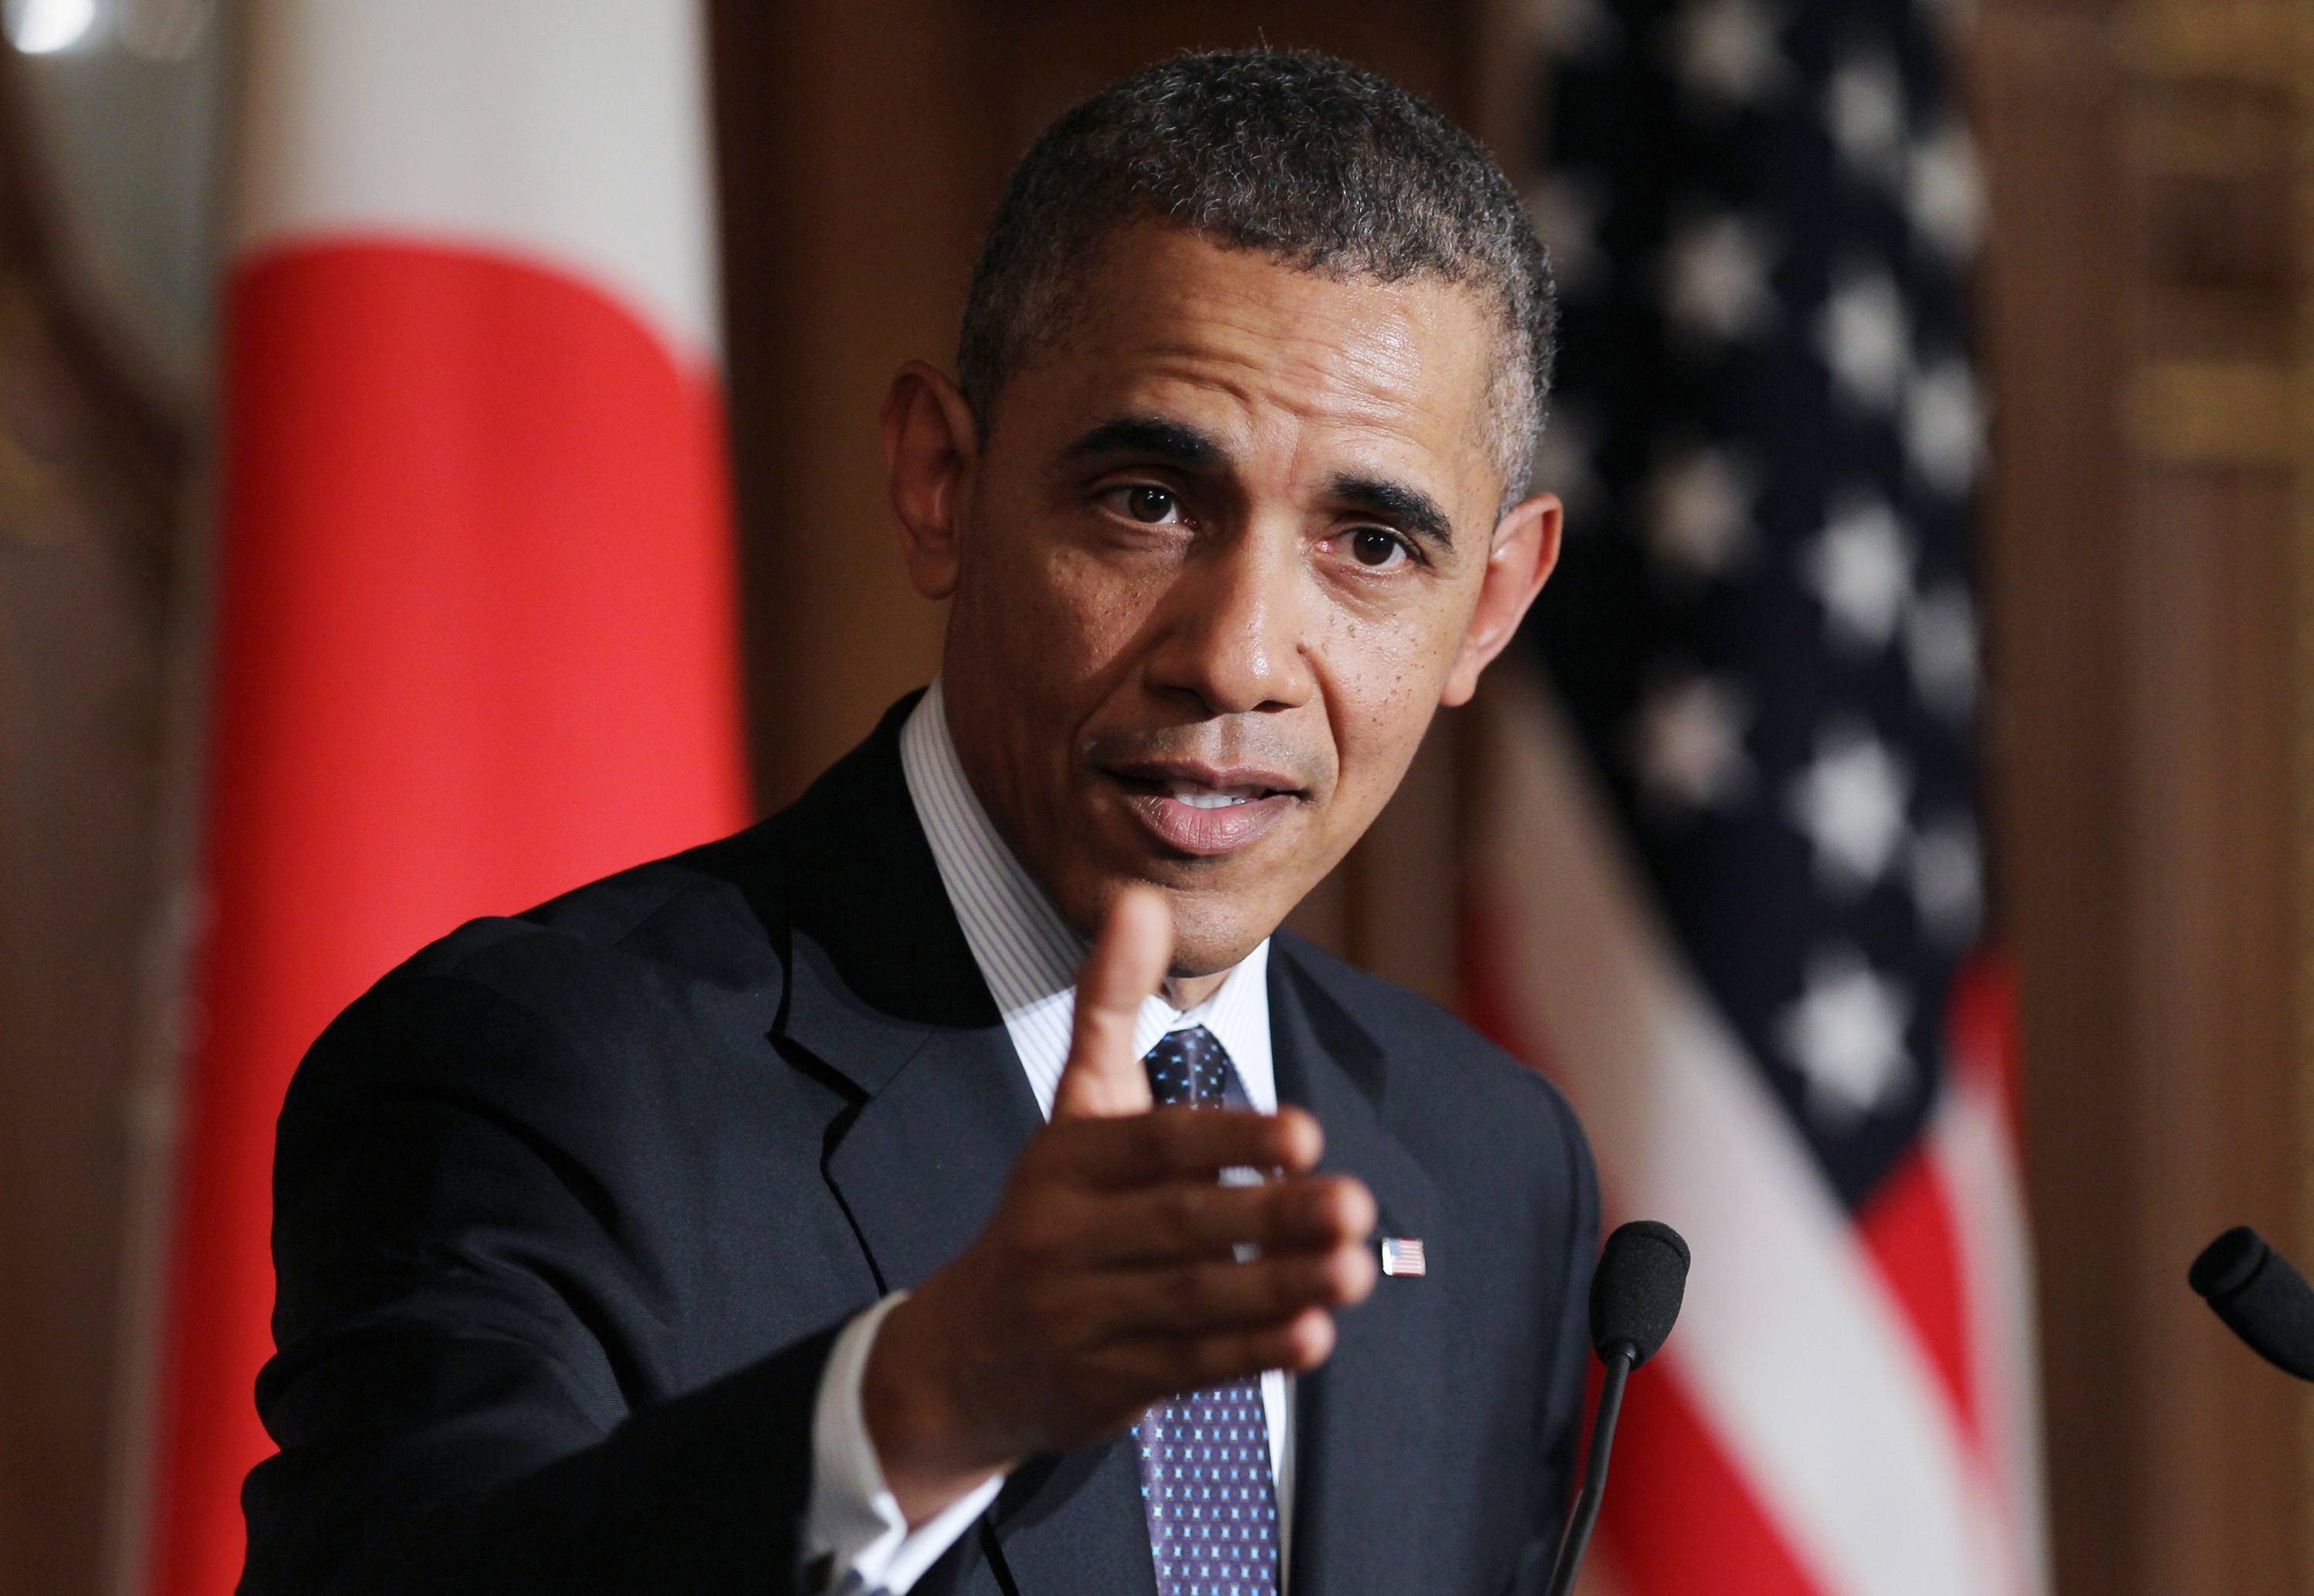 U.S. President Barack Obama said the U.S. and its allies have additional sanctions against Russia ready to go as the crisis in Ukraine continues to escalate.